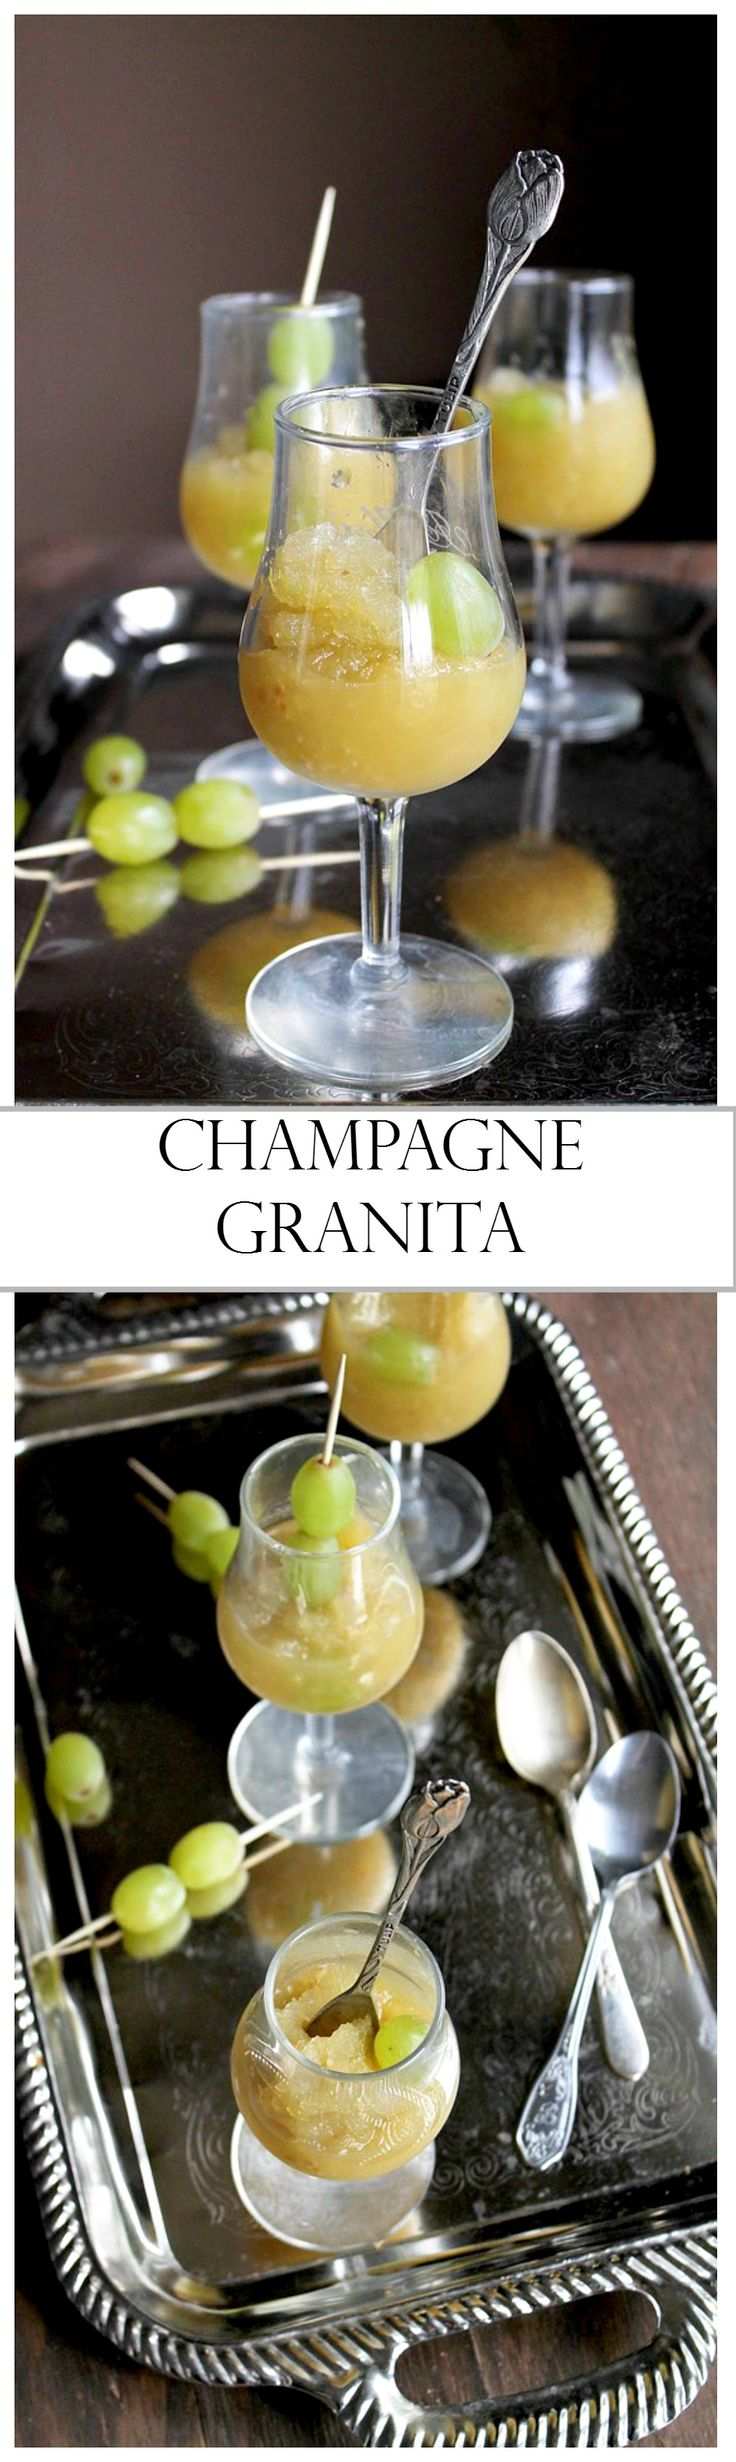 A refreshing treat made with Champagne, grapes, lemon juice, and sugar.